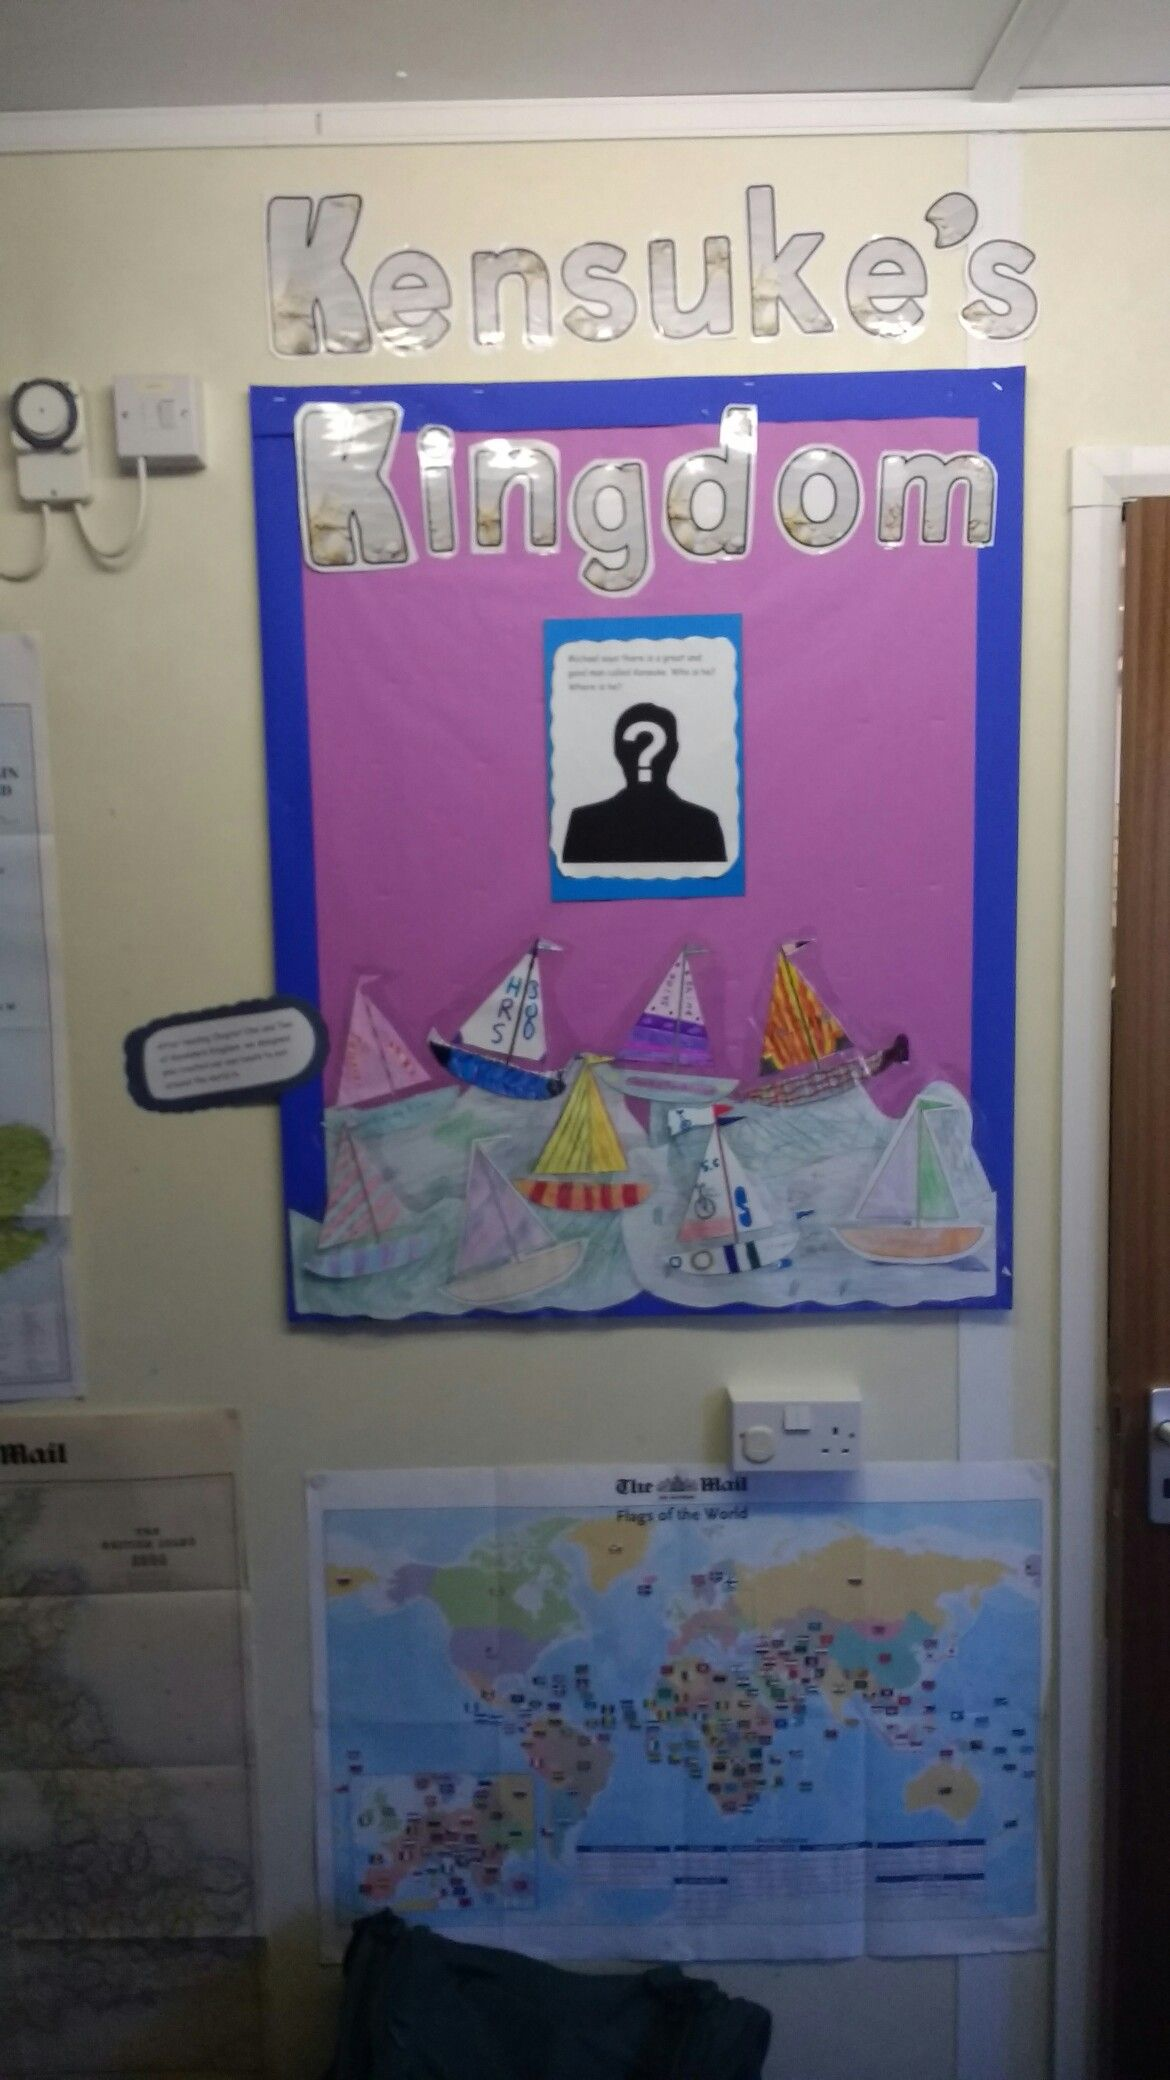 beginning of a Kensuke's Kingdom display. The question mark head will be replaced by a map of the island as the term continues. More will be added around the board also.